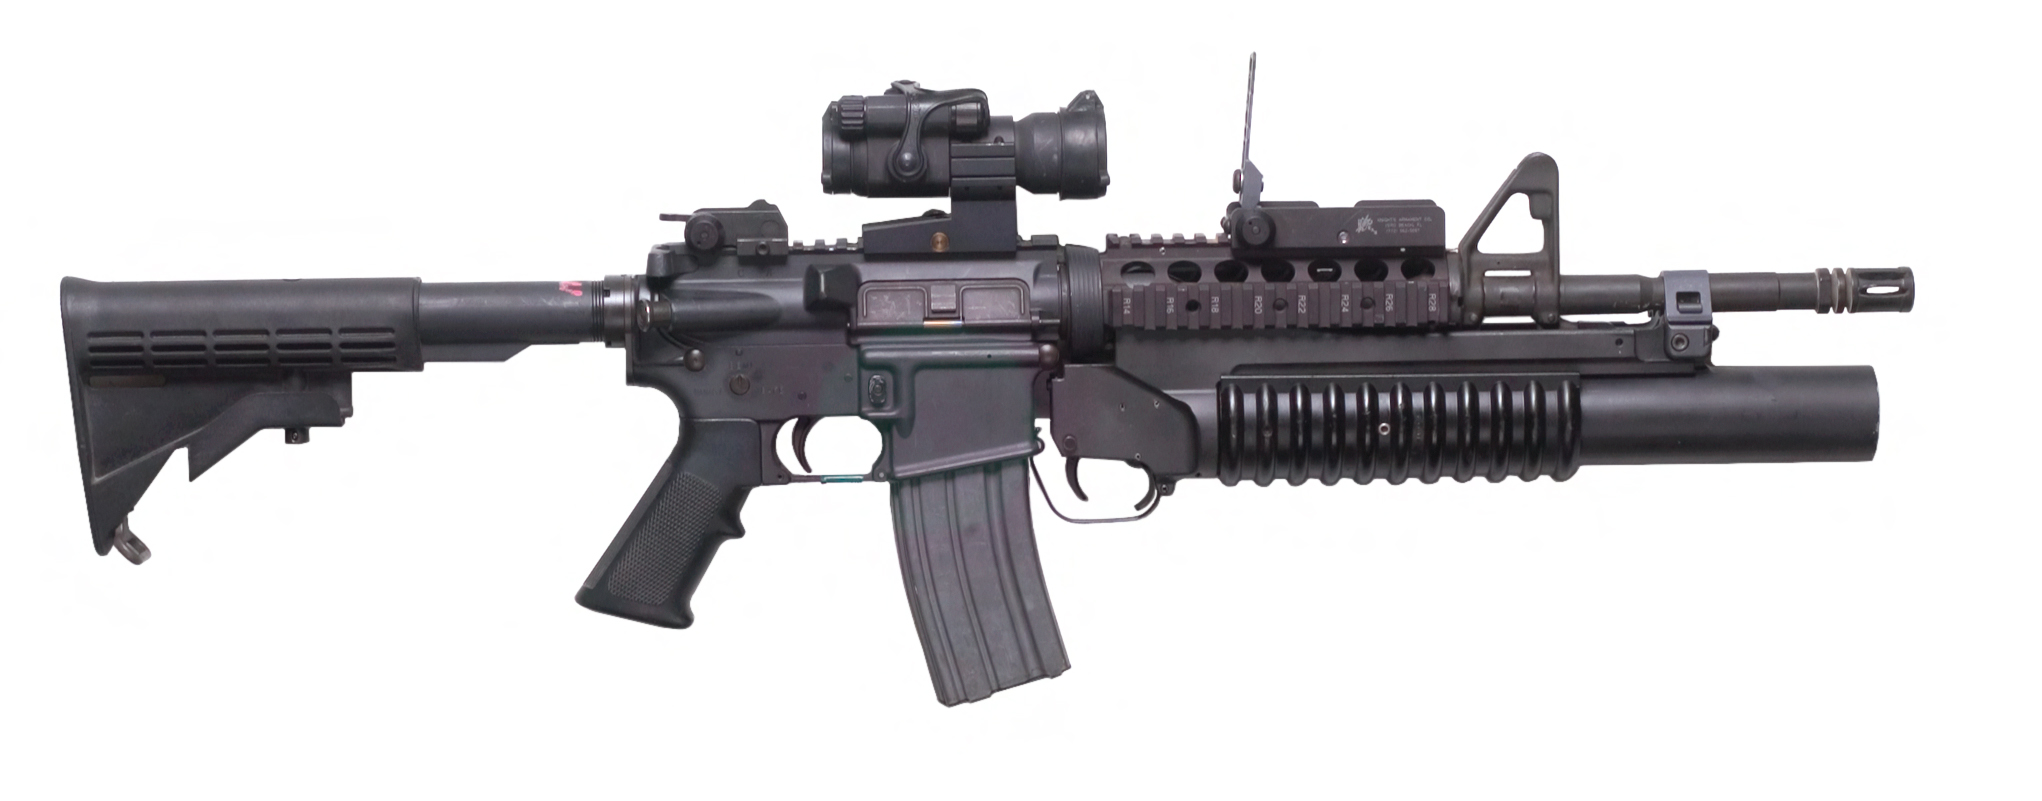 file m4 carbine with m203 grenade launcher 7414626424 jpg